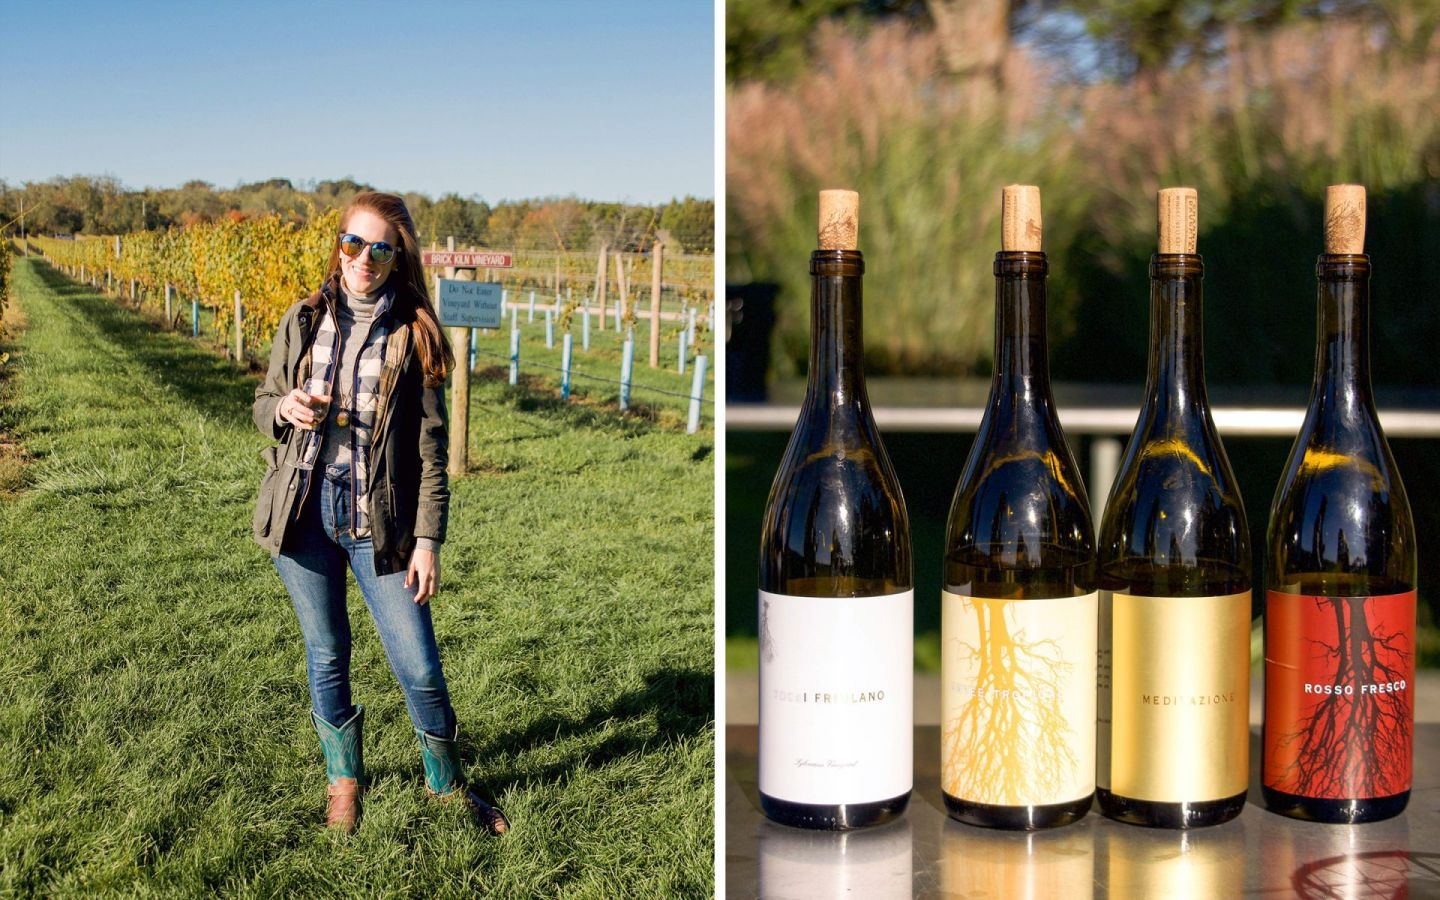 fall in the hamptons - channing daughters winery